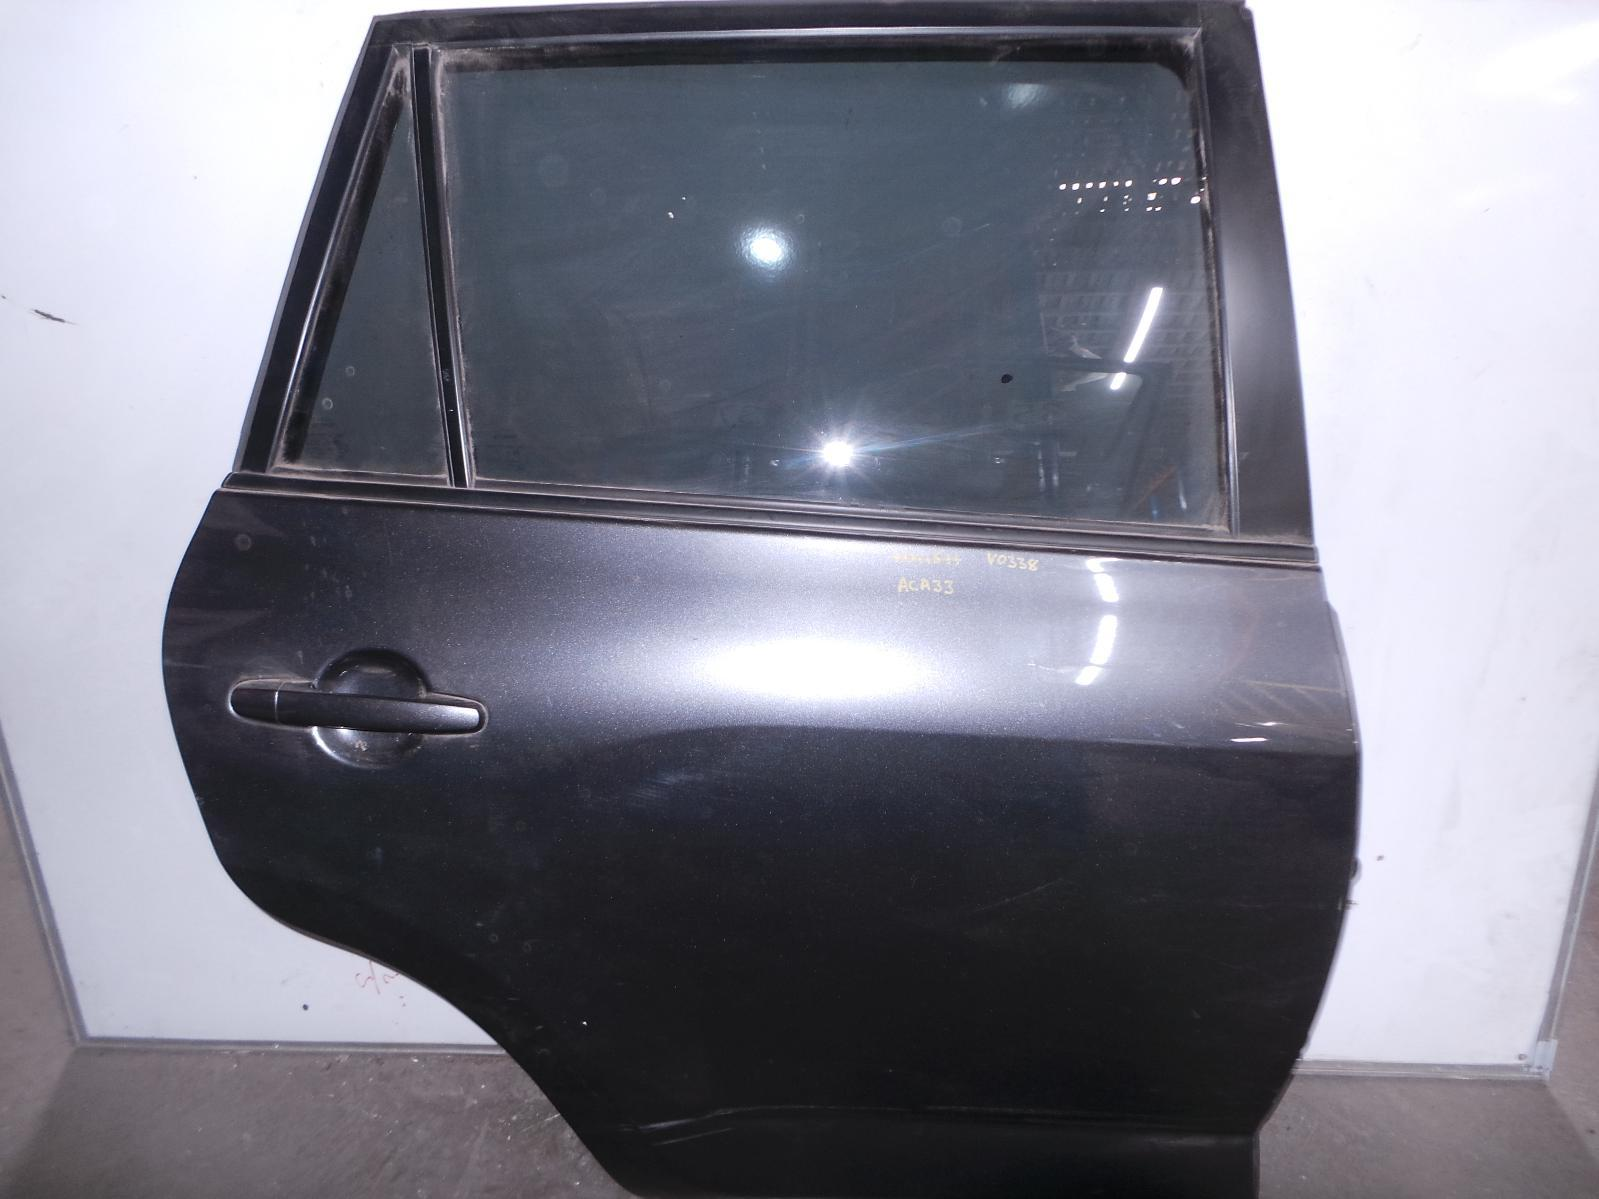 TOYOTA RAV4, RIGHT_REAR_DOOR_SLIDING, ACA33, CV/EDGE, NON FLARE TYPE, 11/05-12/12